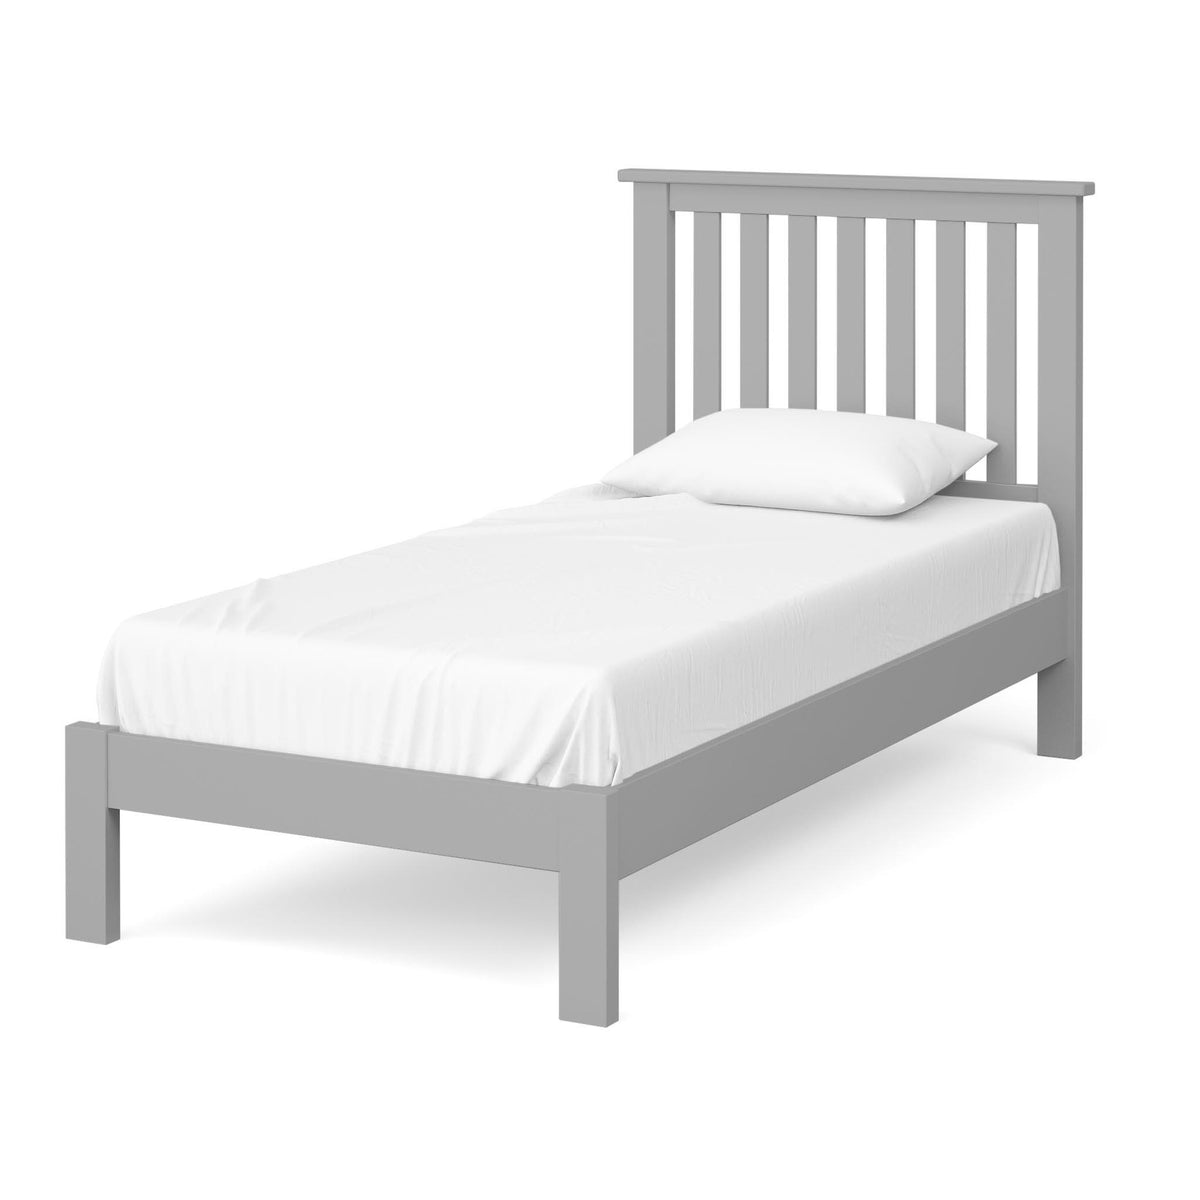 The Cornish Grey 3' Single Wooden Bed Frame